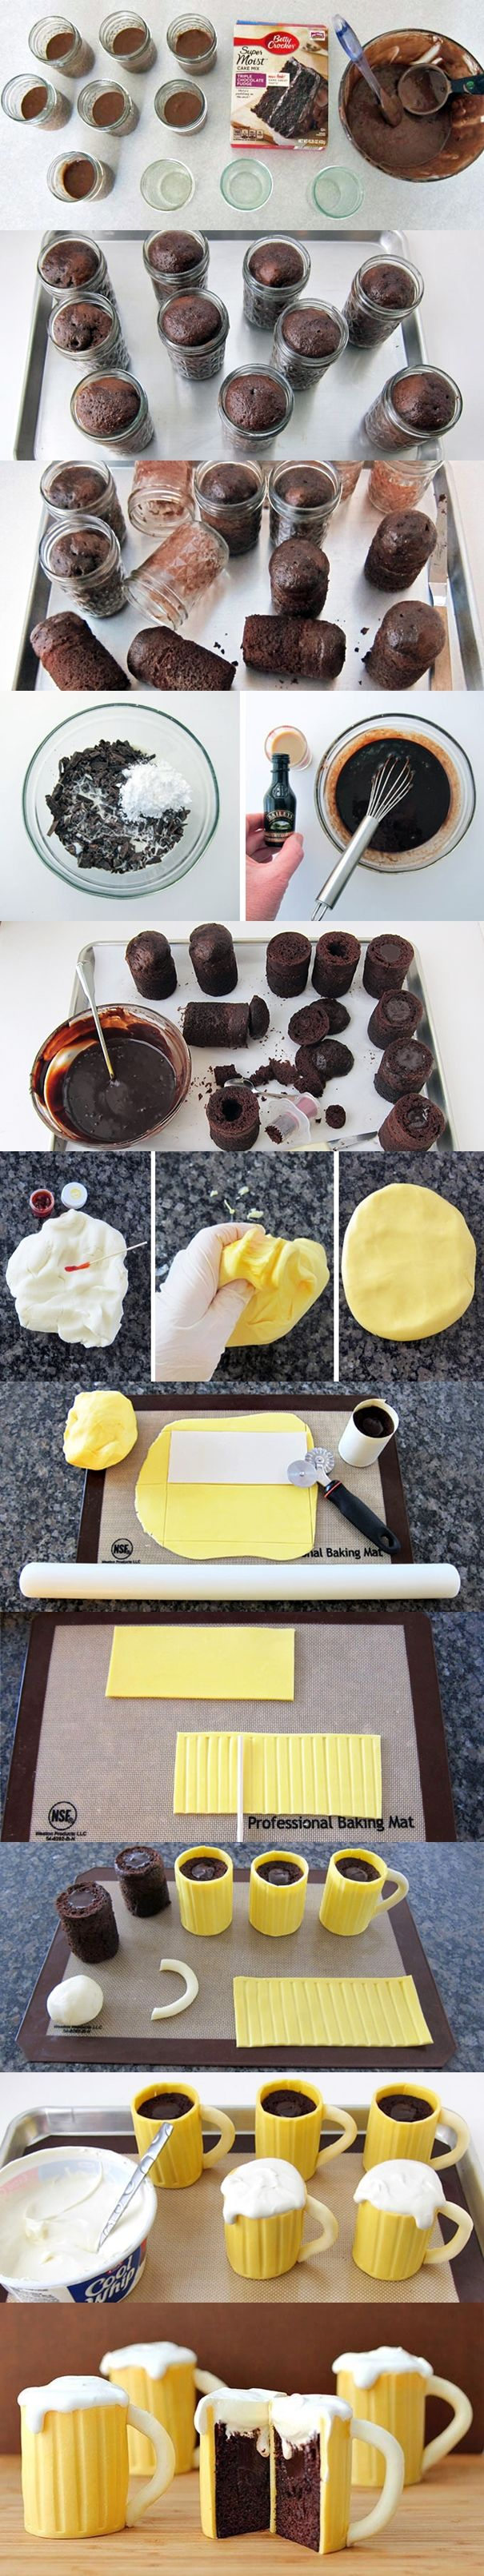 How to Make Beer Mug Cupcakes With A Sweet Baileys Filling » Cool Creativity